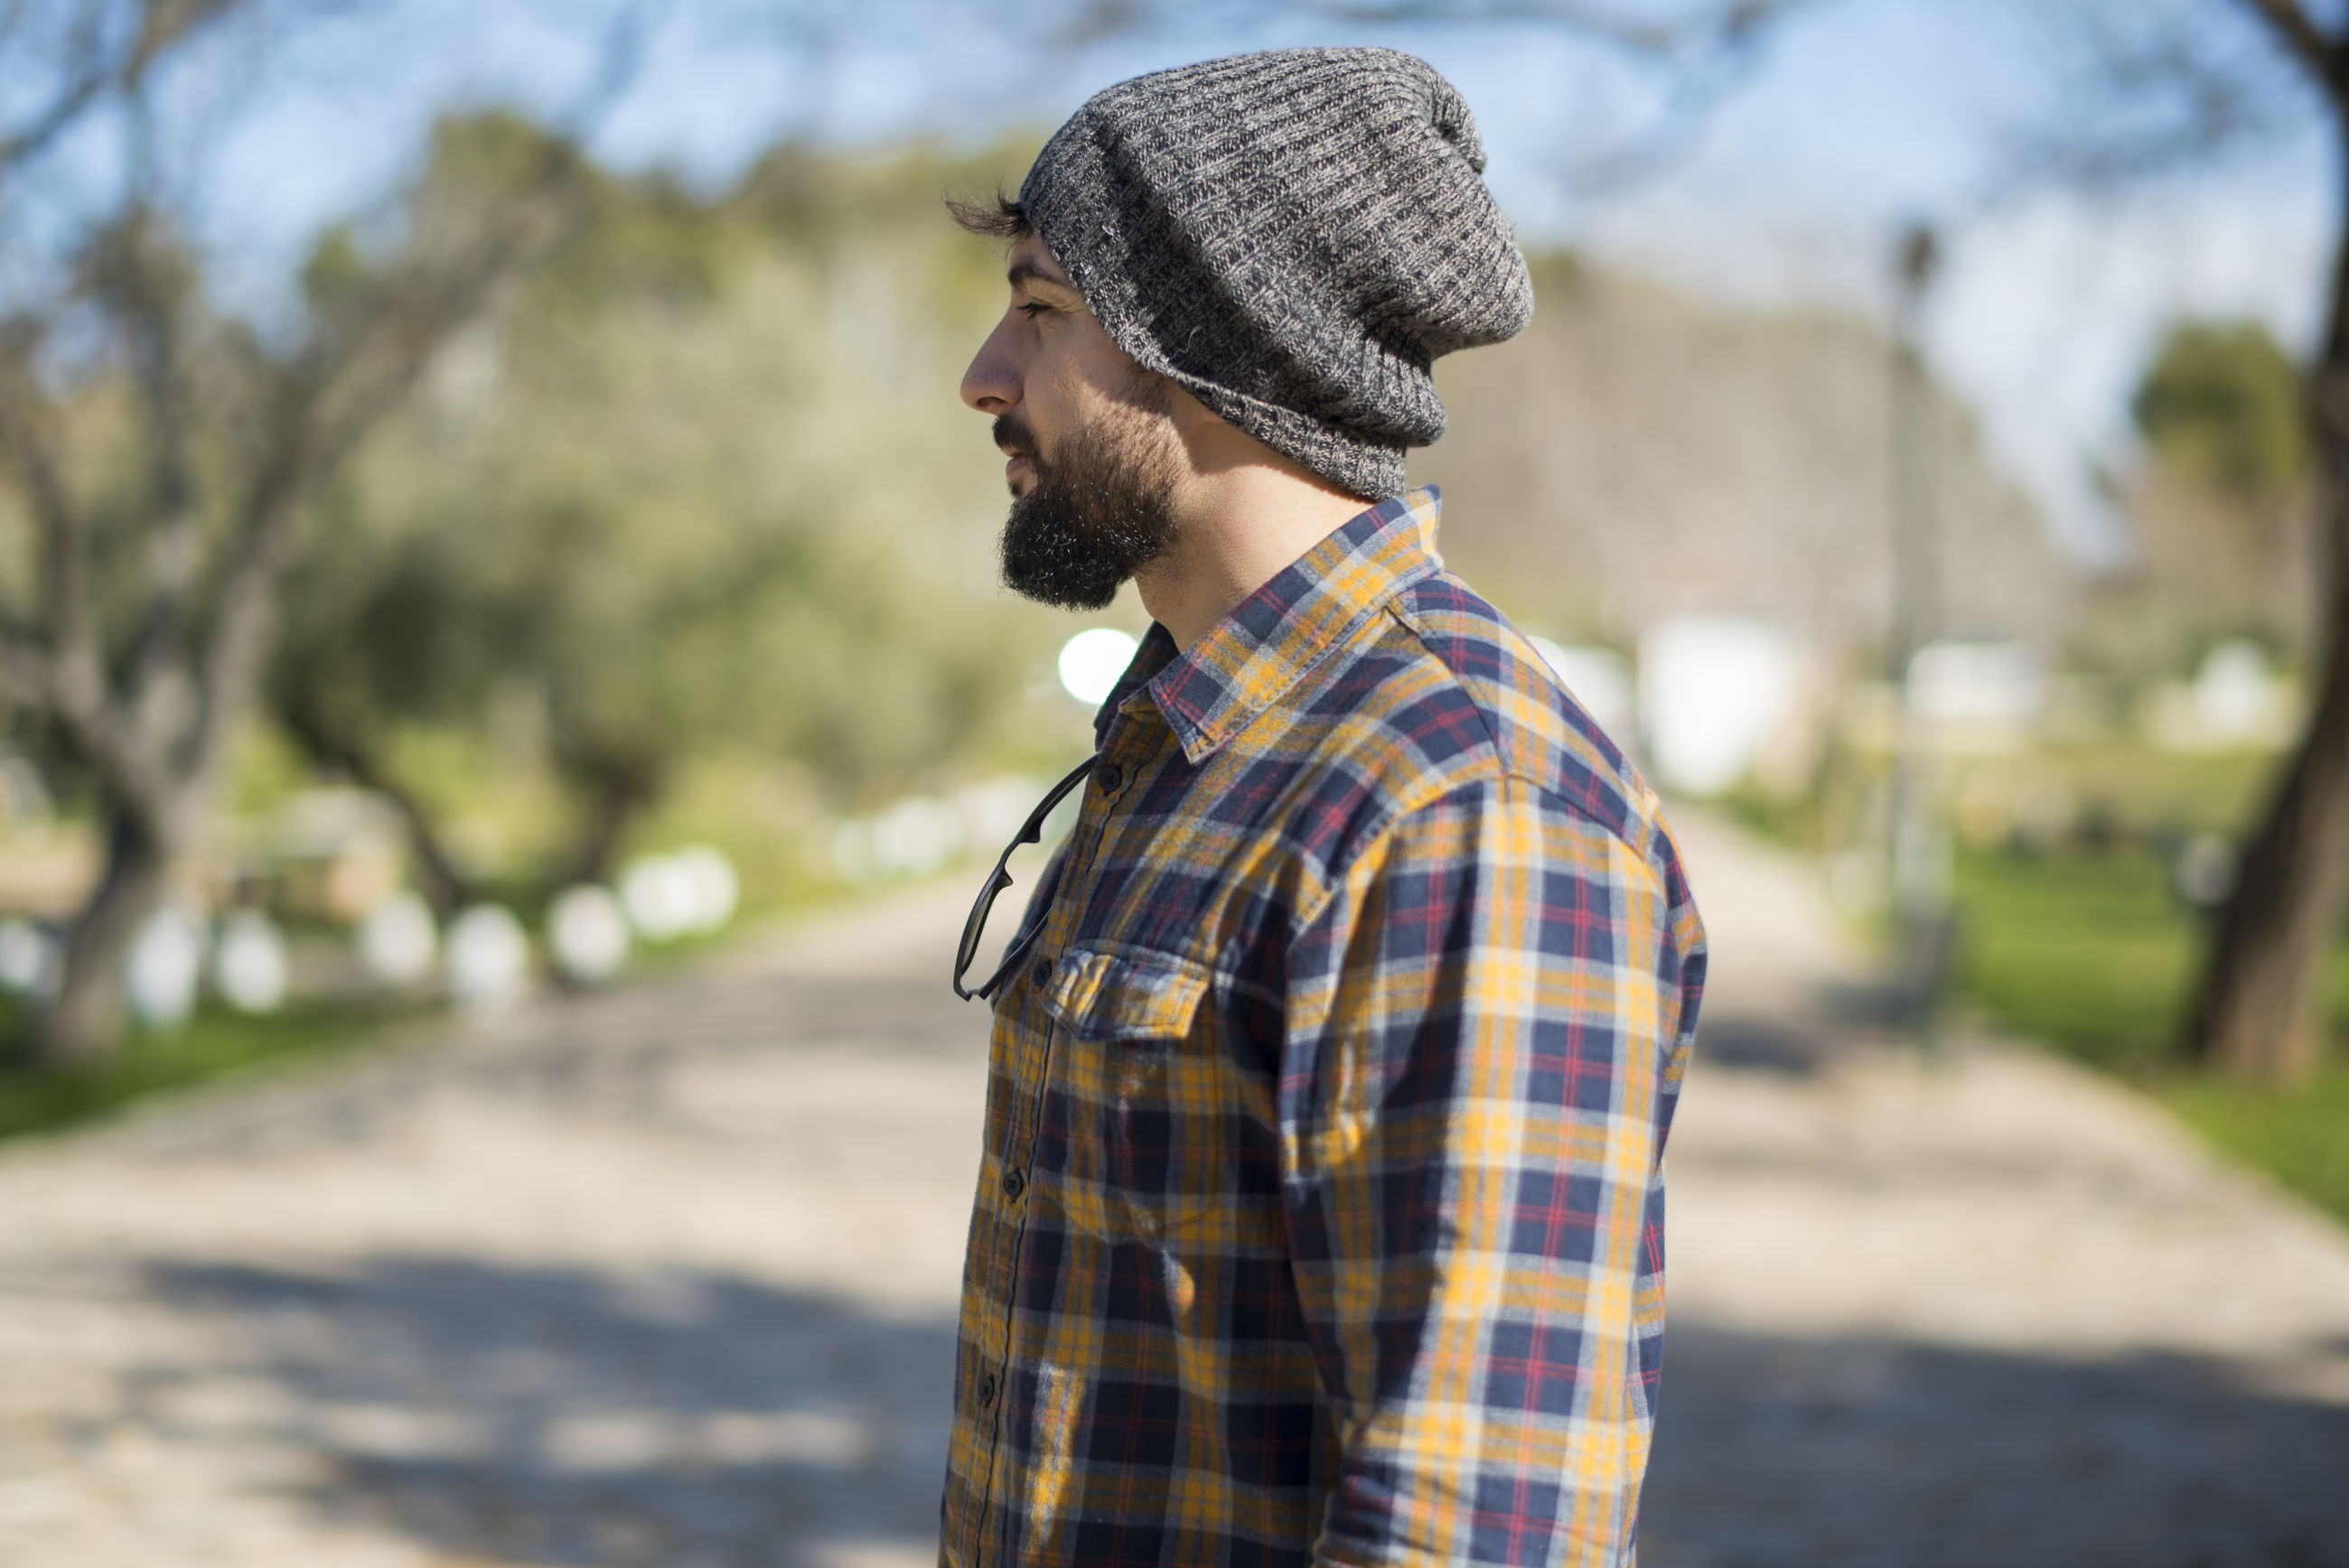 Side view of man wearing knit hat and shirt while looking away outdoors